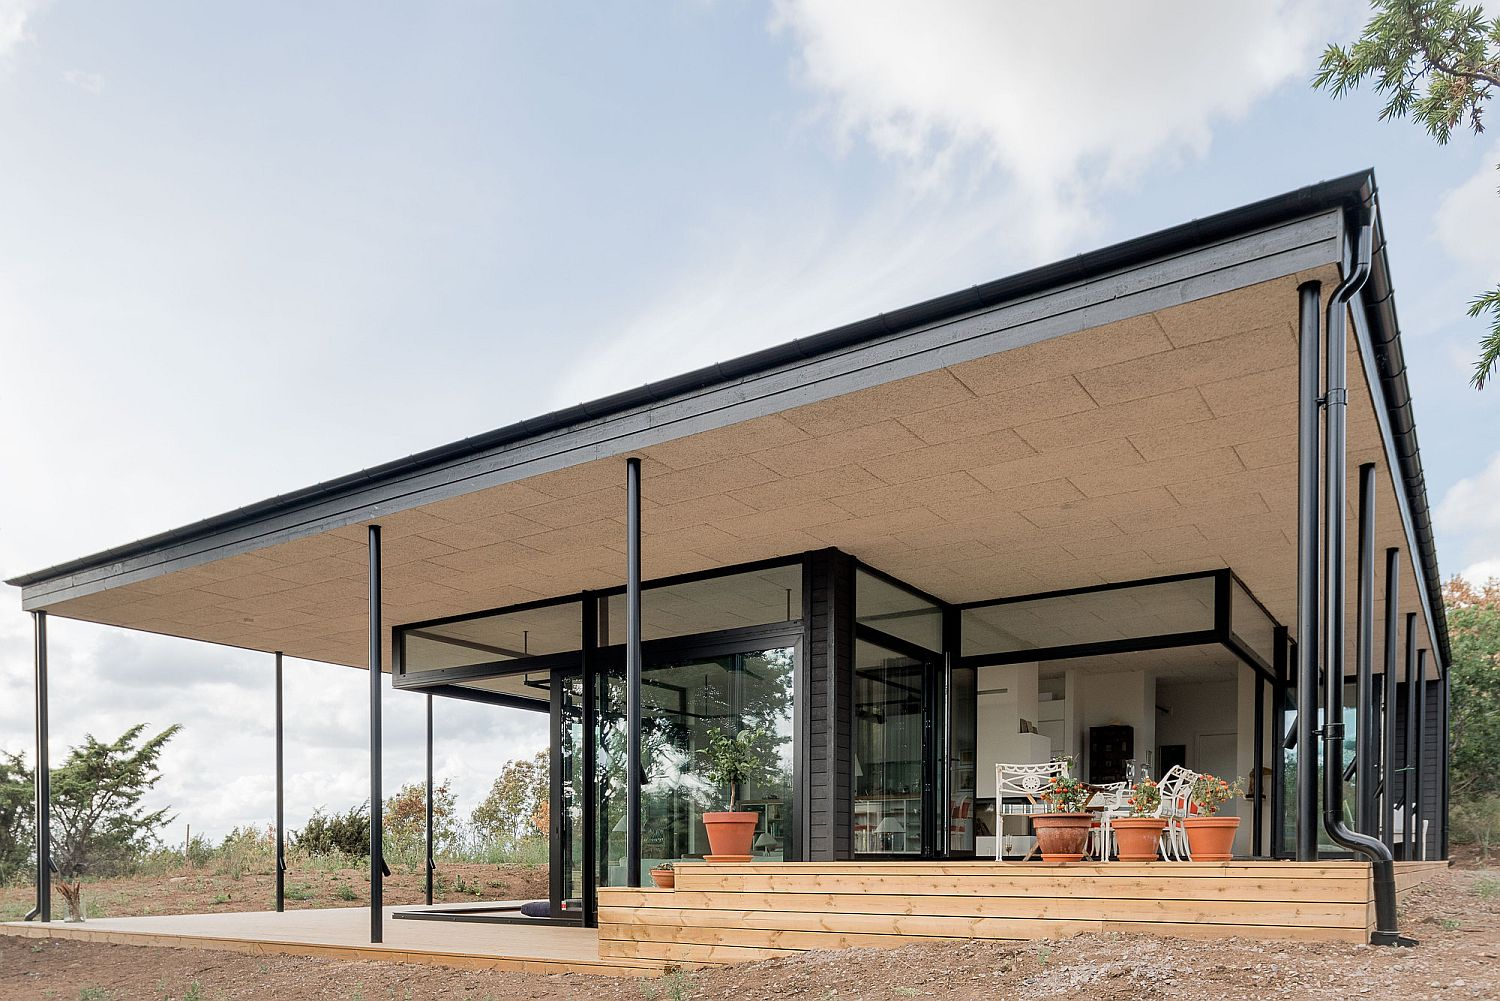 Structure of the roof provides protection from the elements as the homeowners enjoy the outdoors